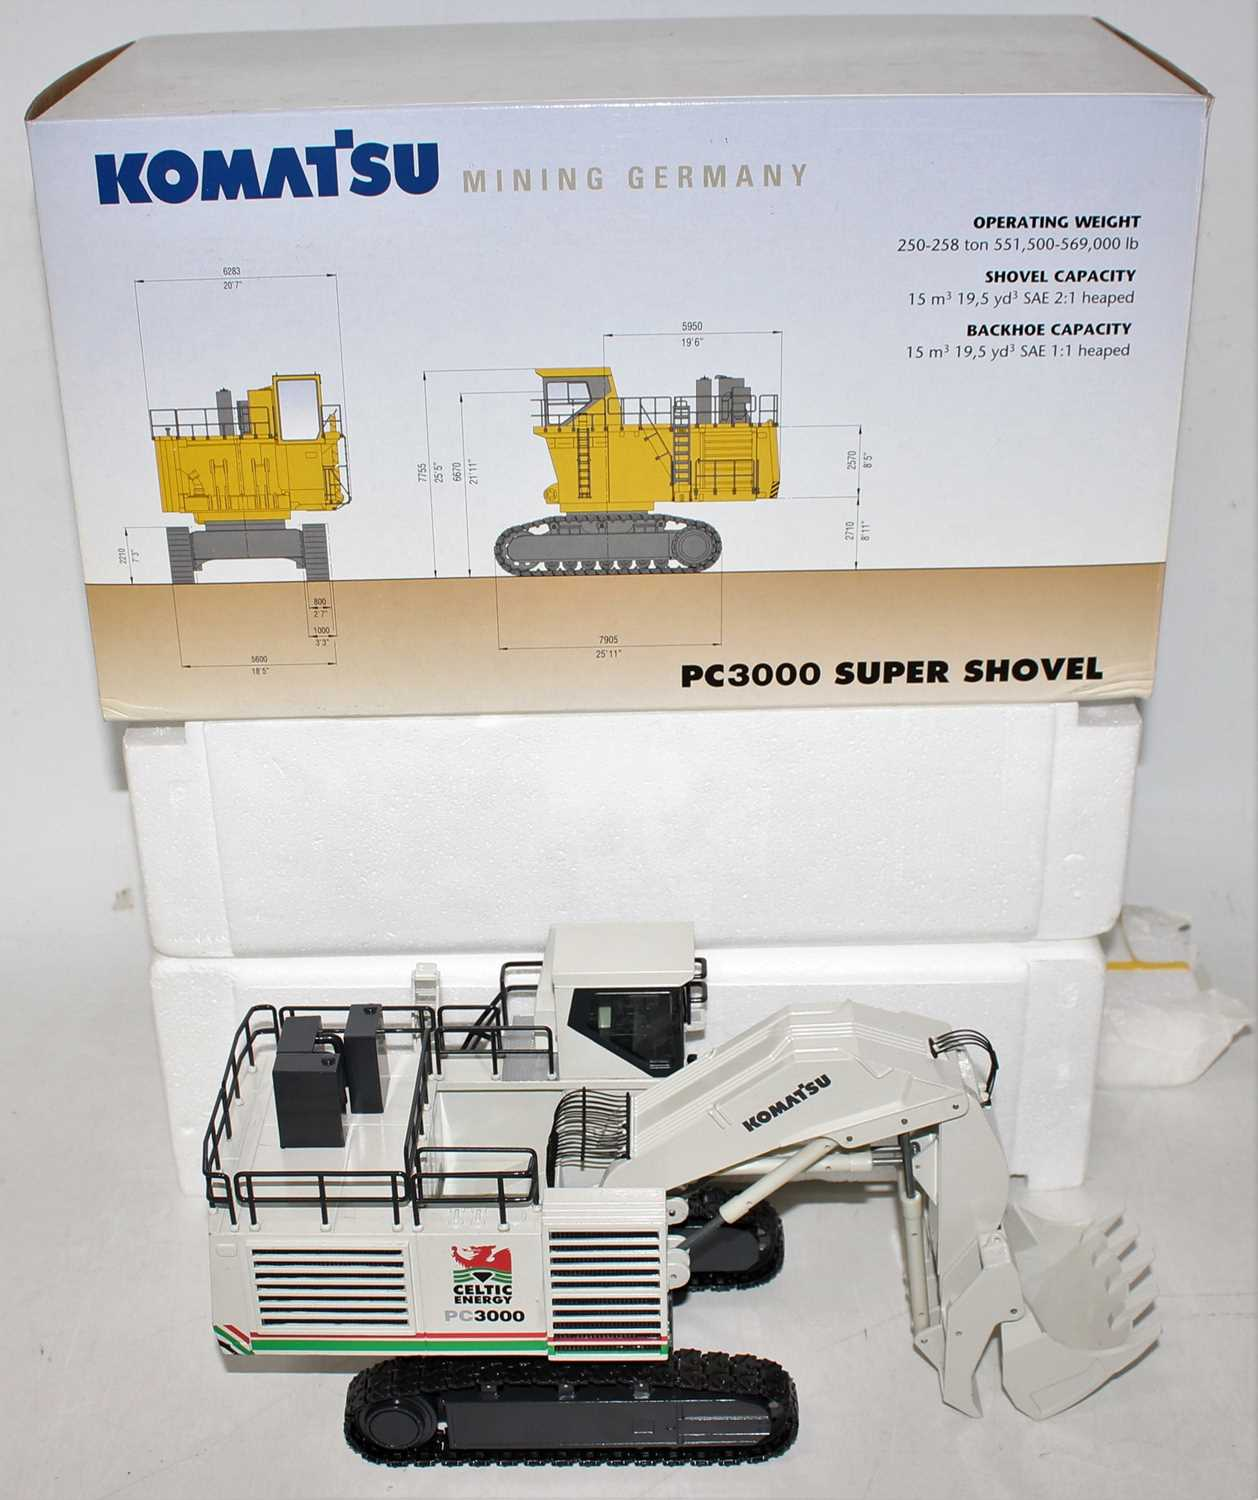 An NZG model No. 6131/01 1/50 scale model of a Komatsu PC3000 Super Shovel finished in off-white - Image 2 of 2